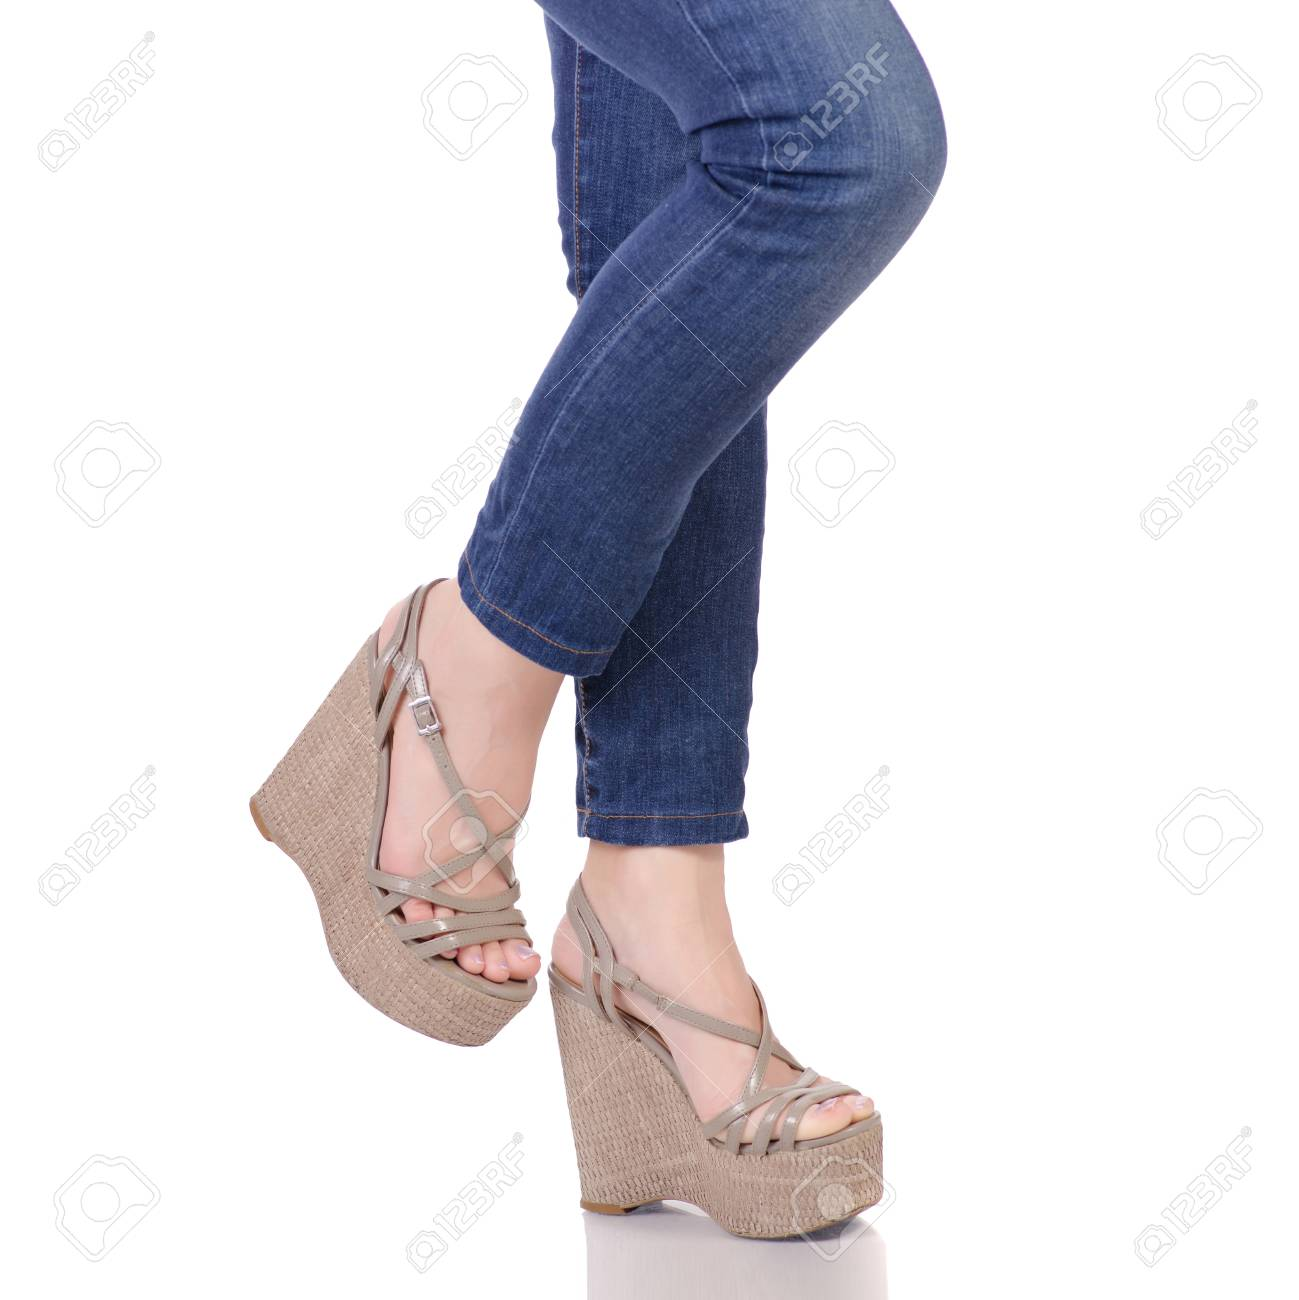 fcb18ff2be89 Female legs in jeans and gray sandals on a wedge buy shop fashion beauty on  a